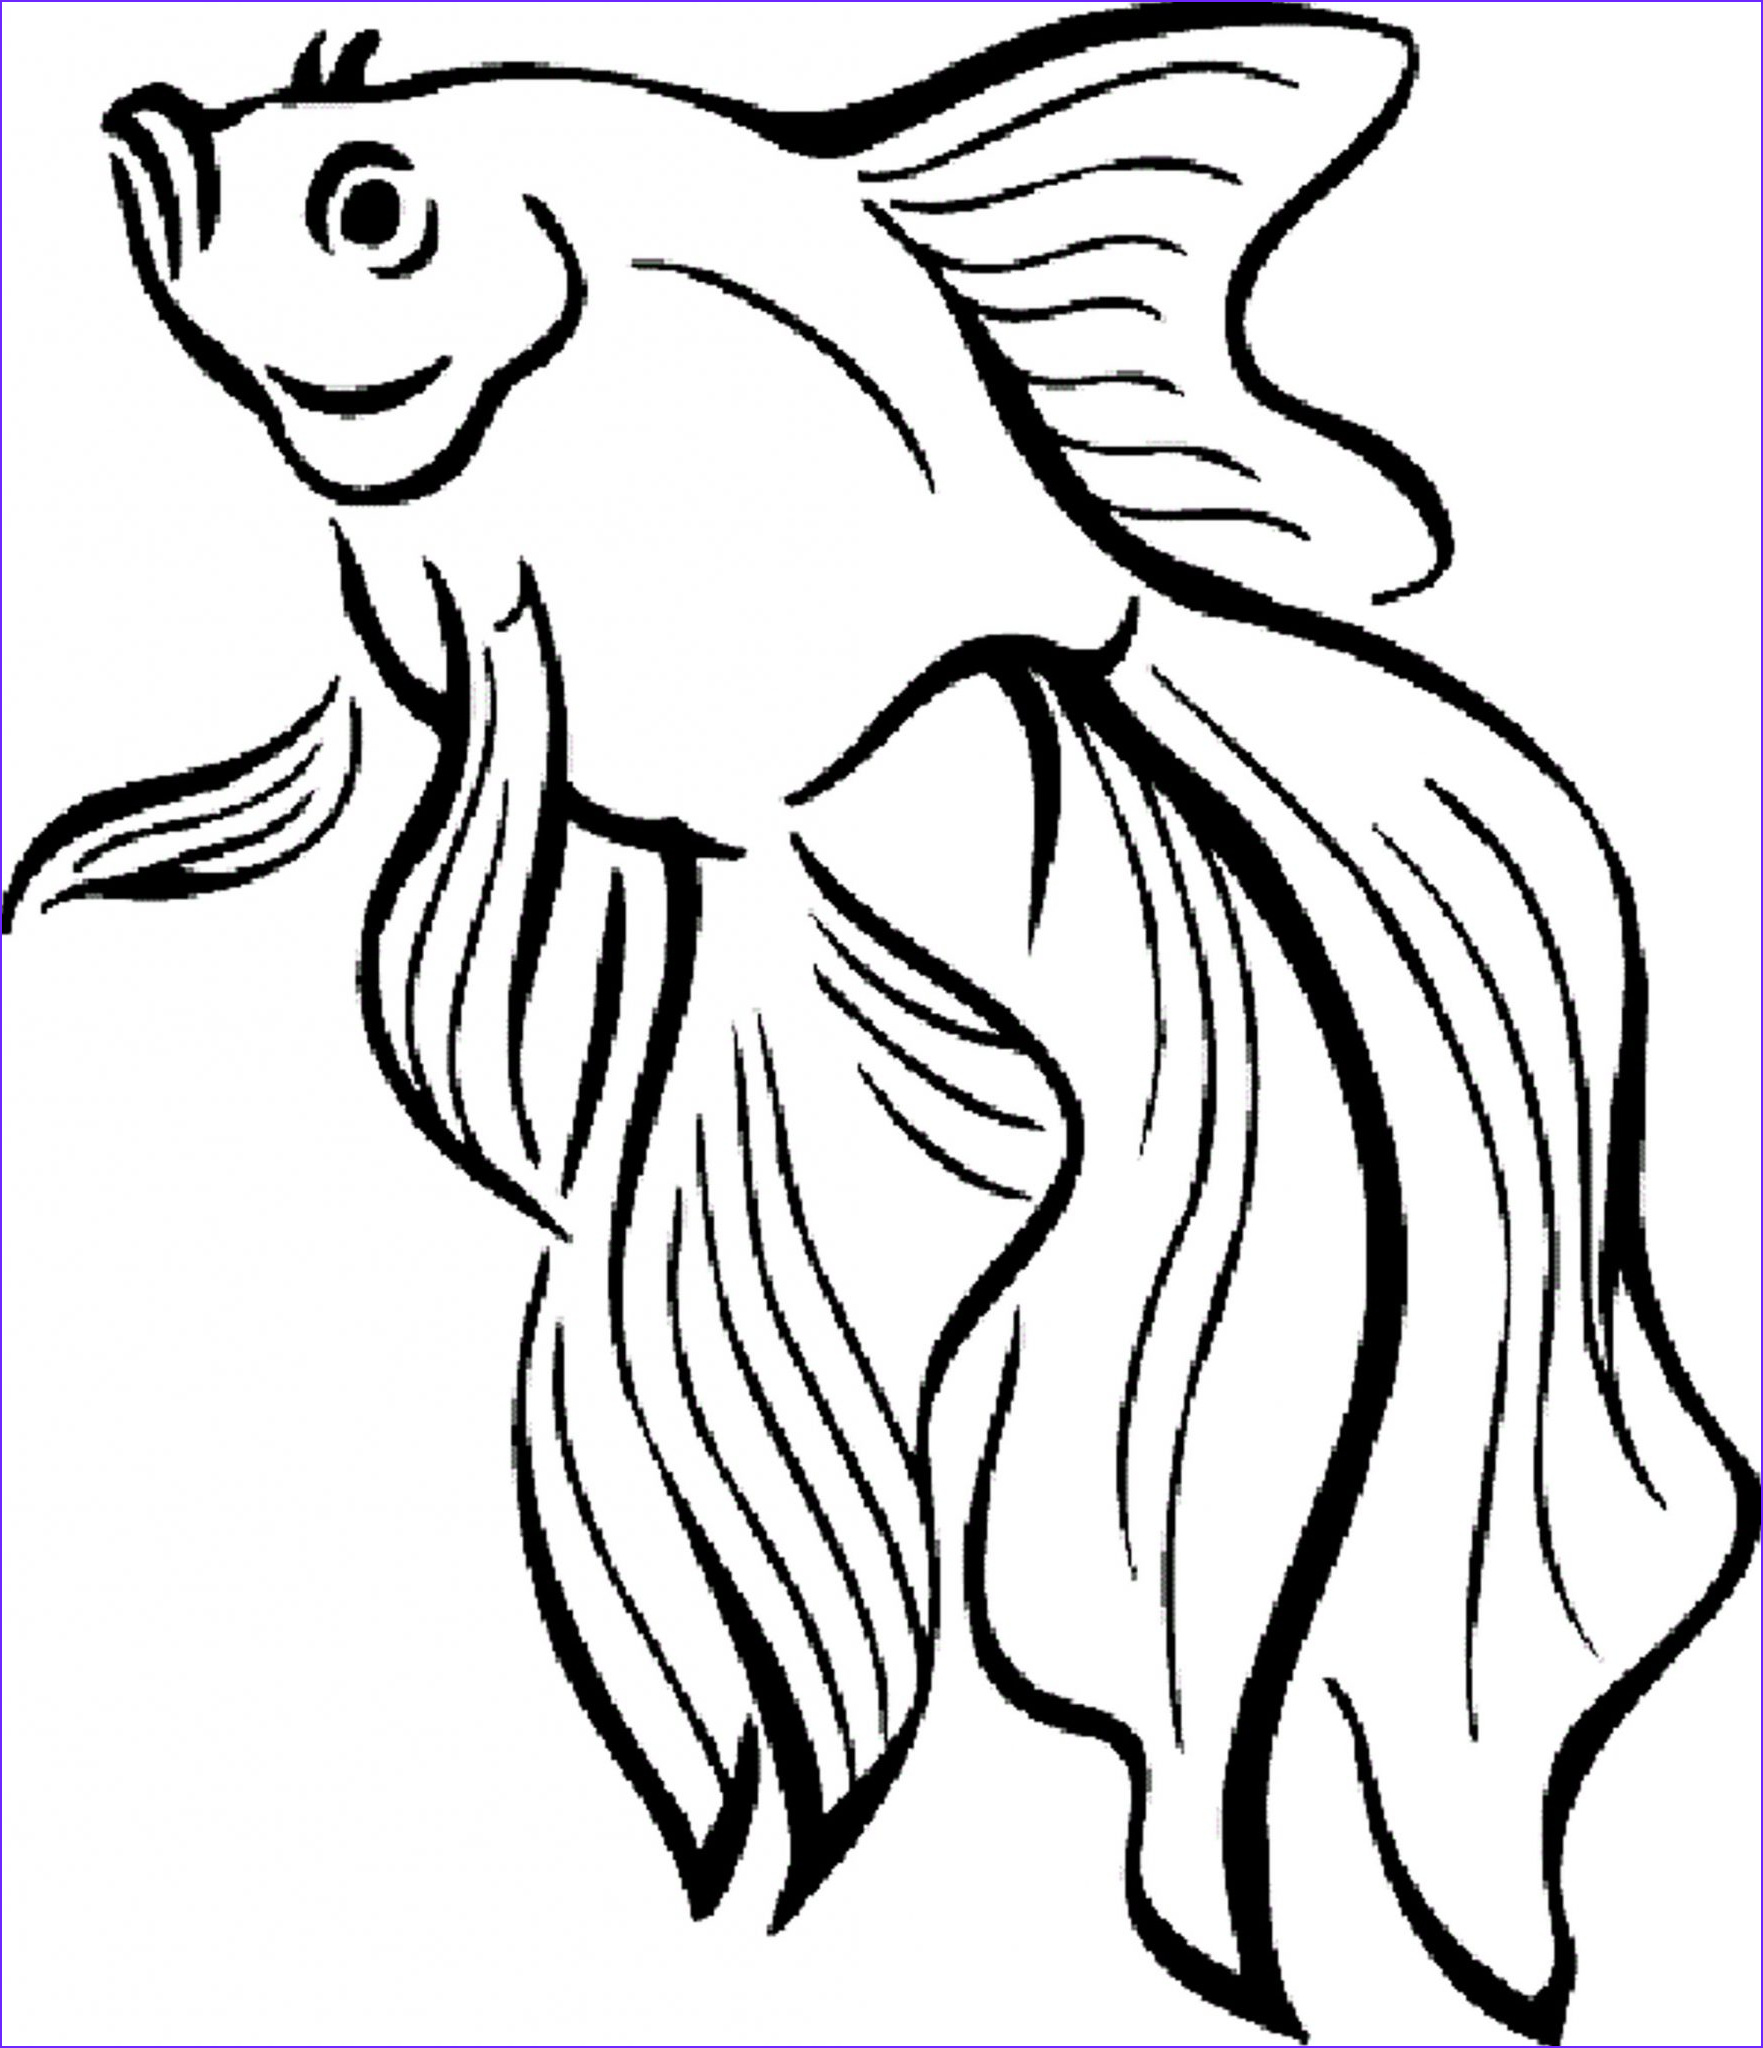 Fish Coloring Book Inspirational Photos Print & Download Cute and Educative Fish Coloring Pages